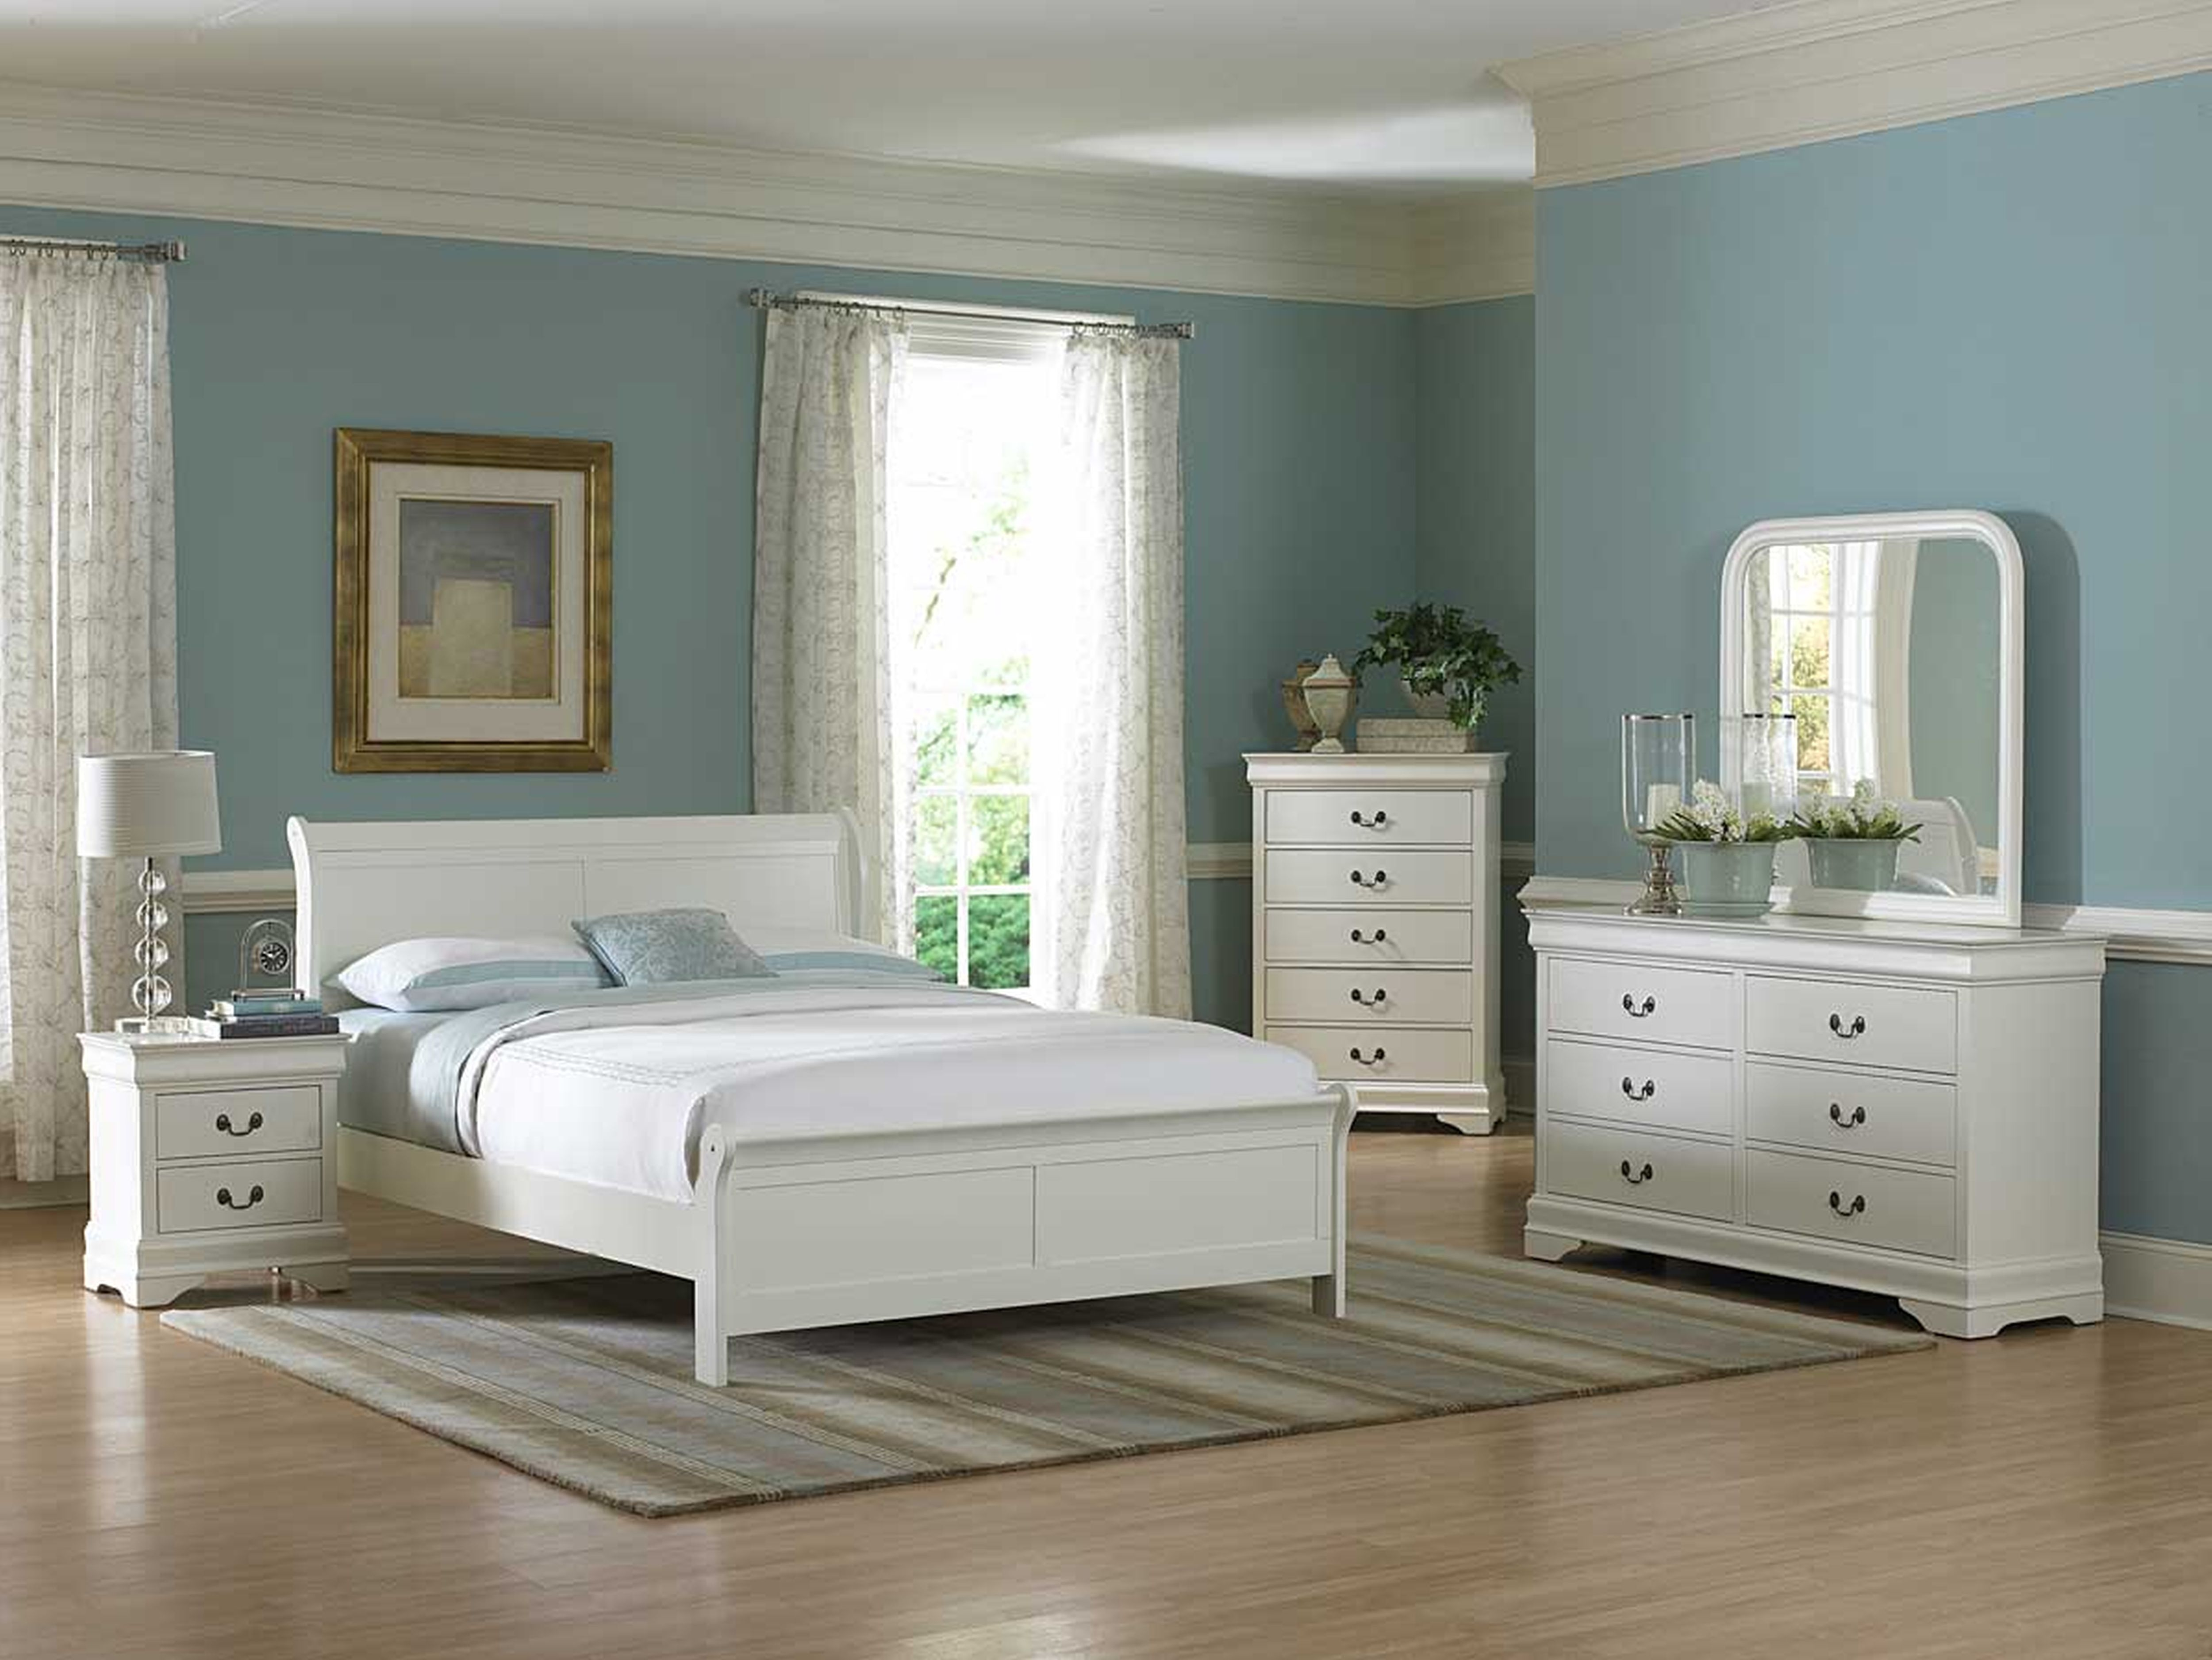 ikea bedroom furniture designs small ideas as beds and images white living room sofa bed chairs modern costco ashley bathroom apppie org